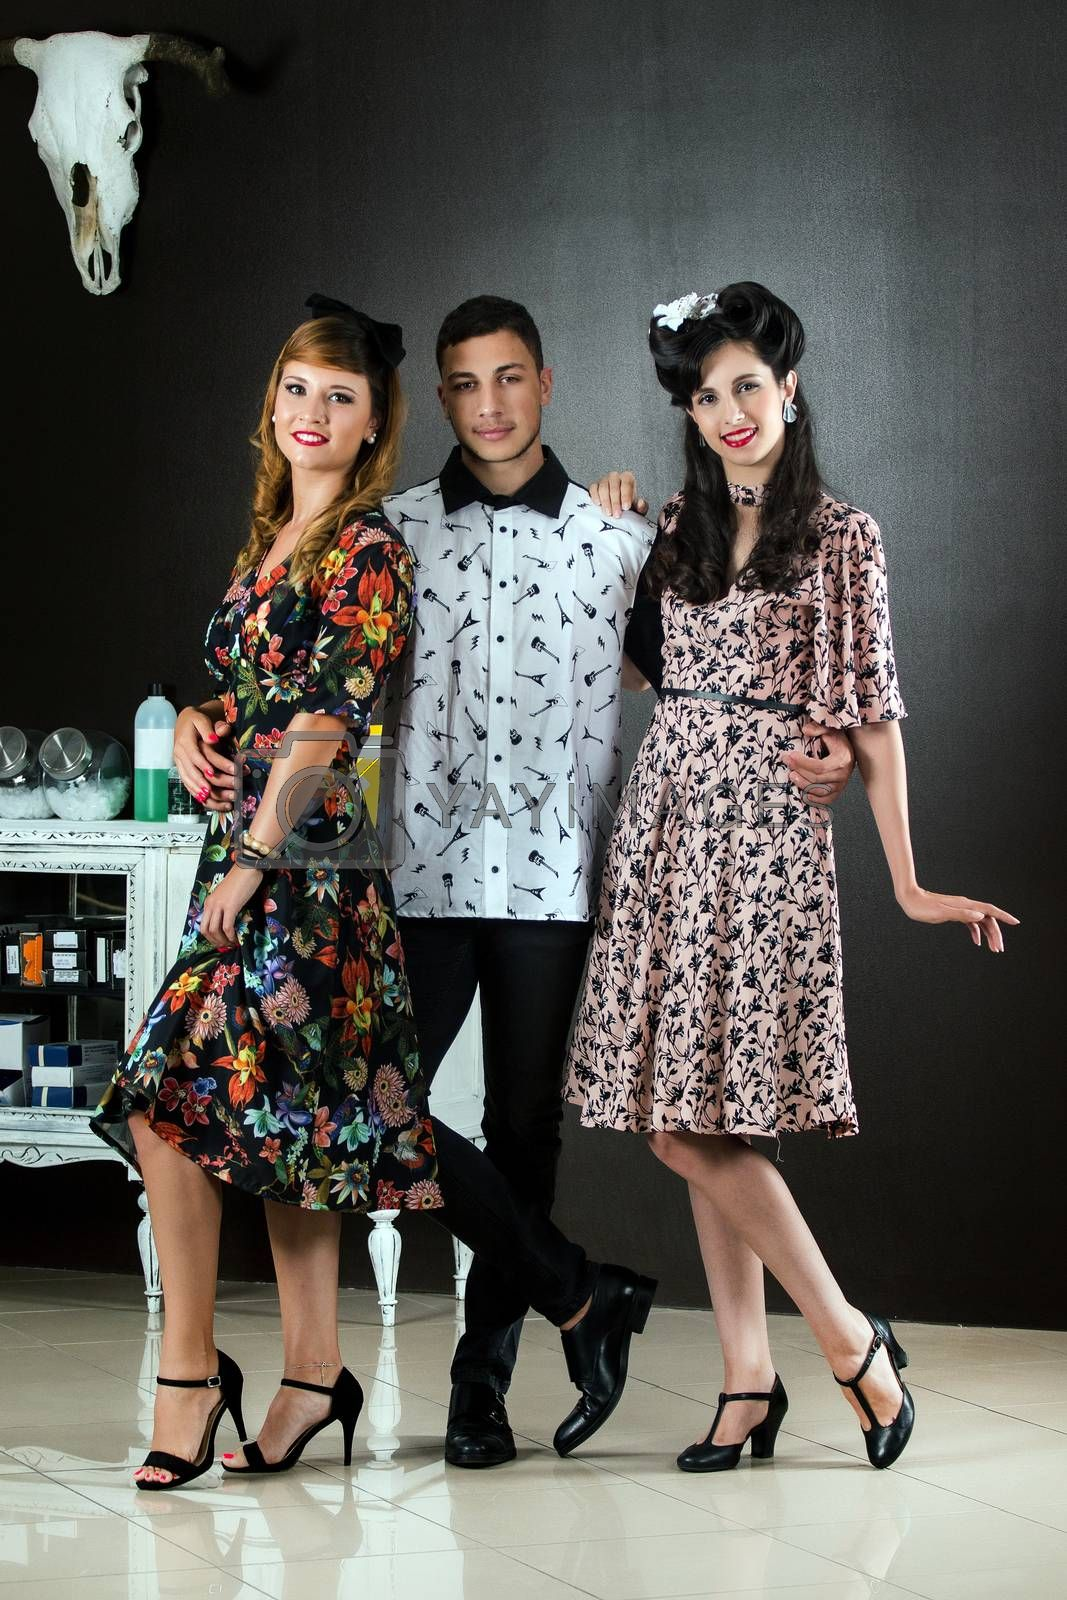 Two woman and a man posing on a vintage style retro clothing.